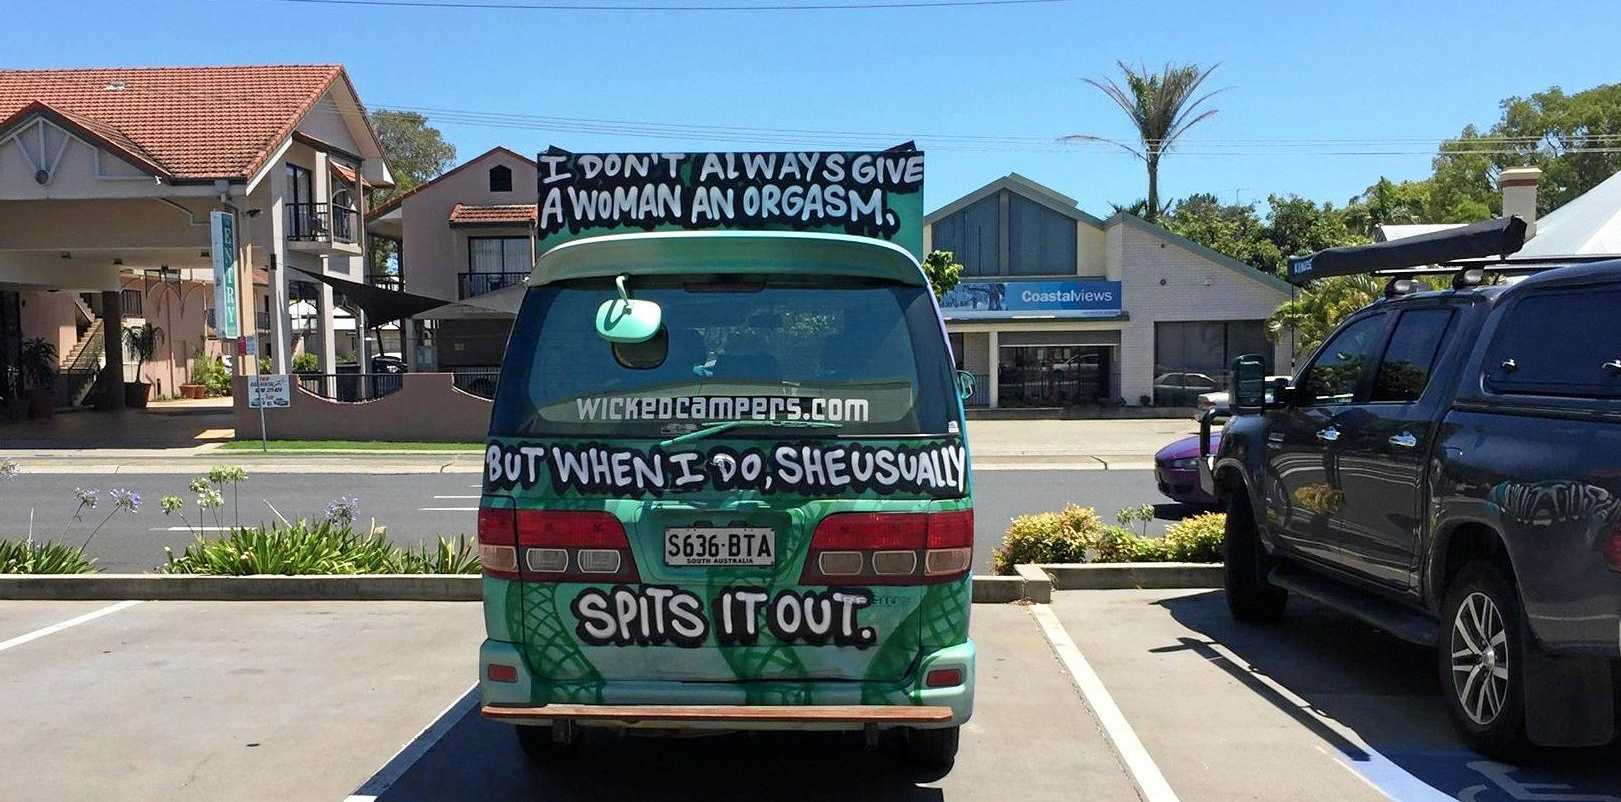 Not Wicked, just misogynist. This camper van sends a message to the families having lunch in Grafton on Thursday, as well as women in general.